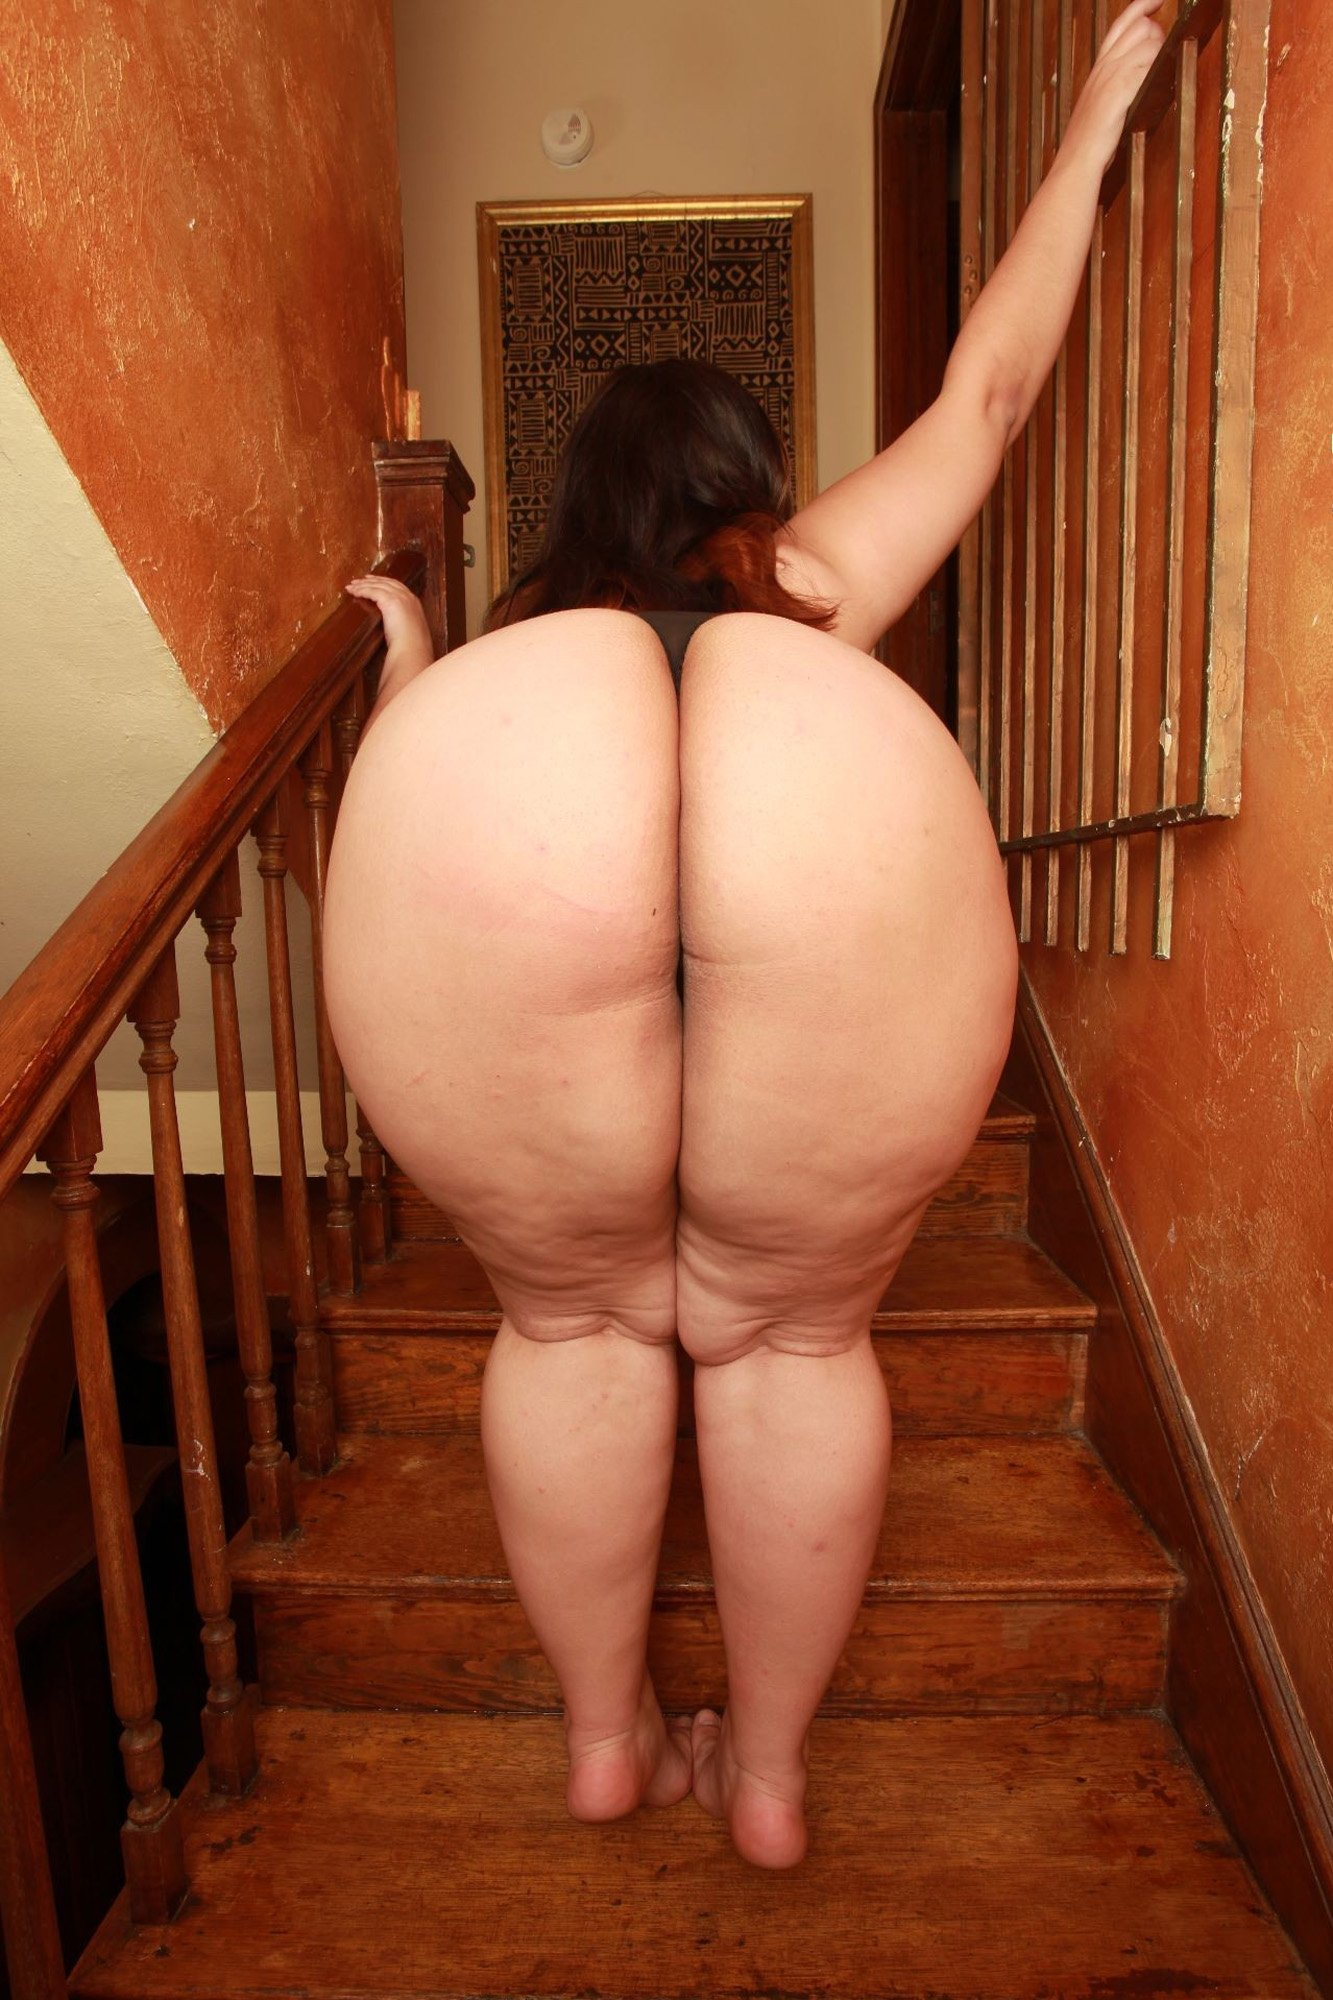 Anal Big Ass Xnxx 6 pictures | free download nude photo gallery